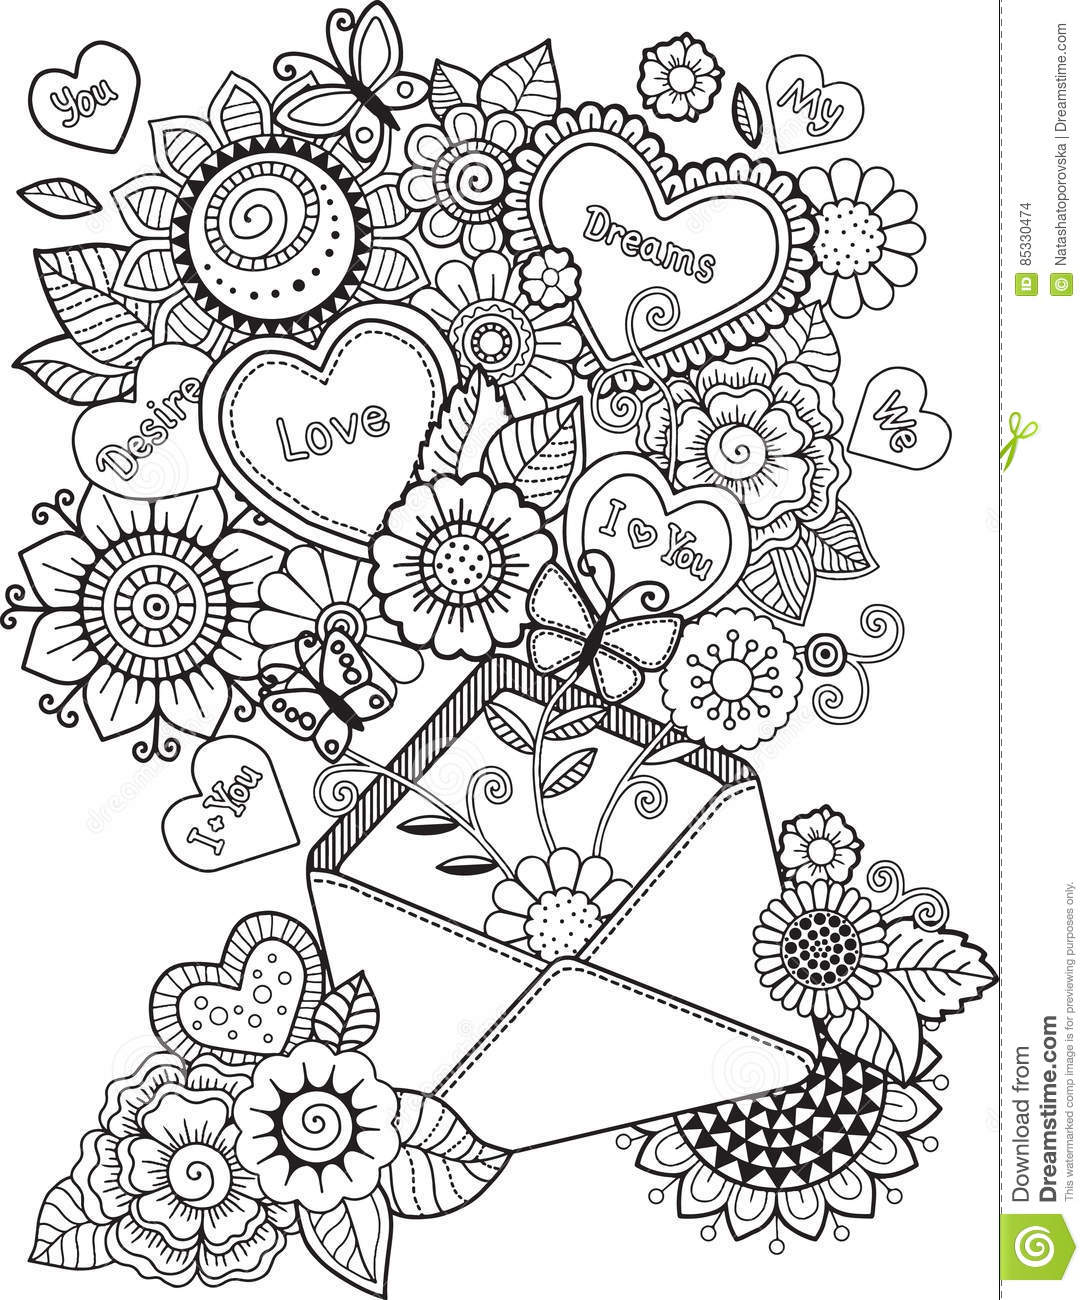 Coloring Book For Adult. I Love You. Valentines Day Stock ...